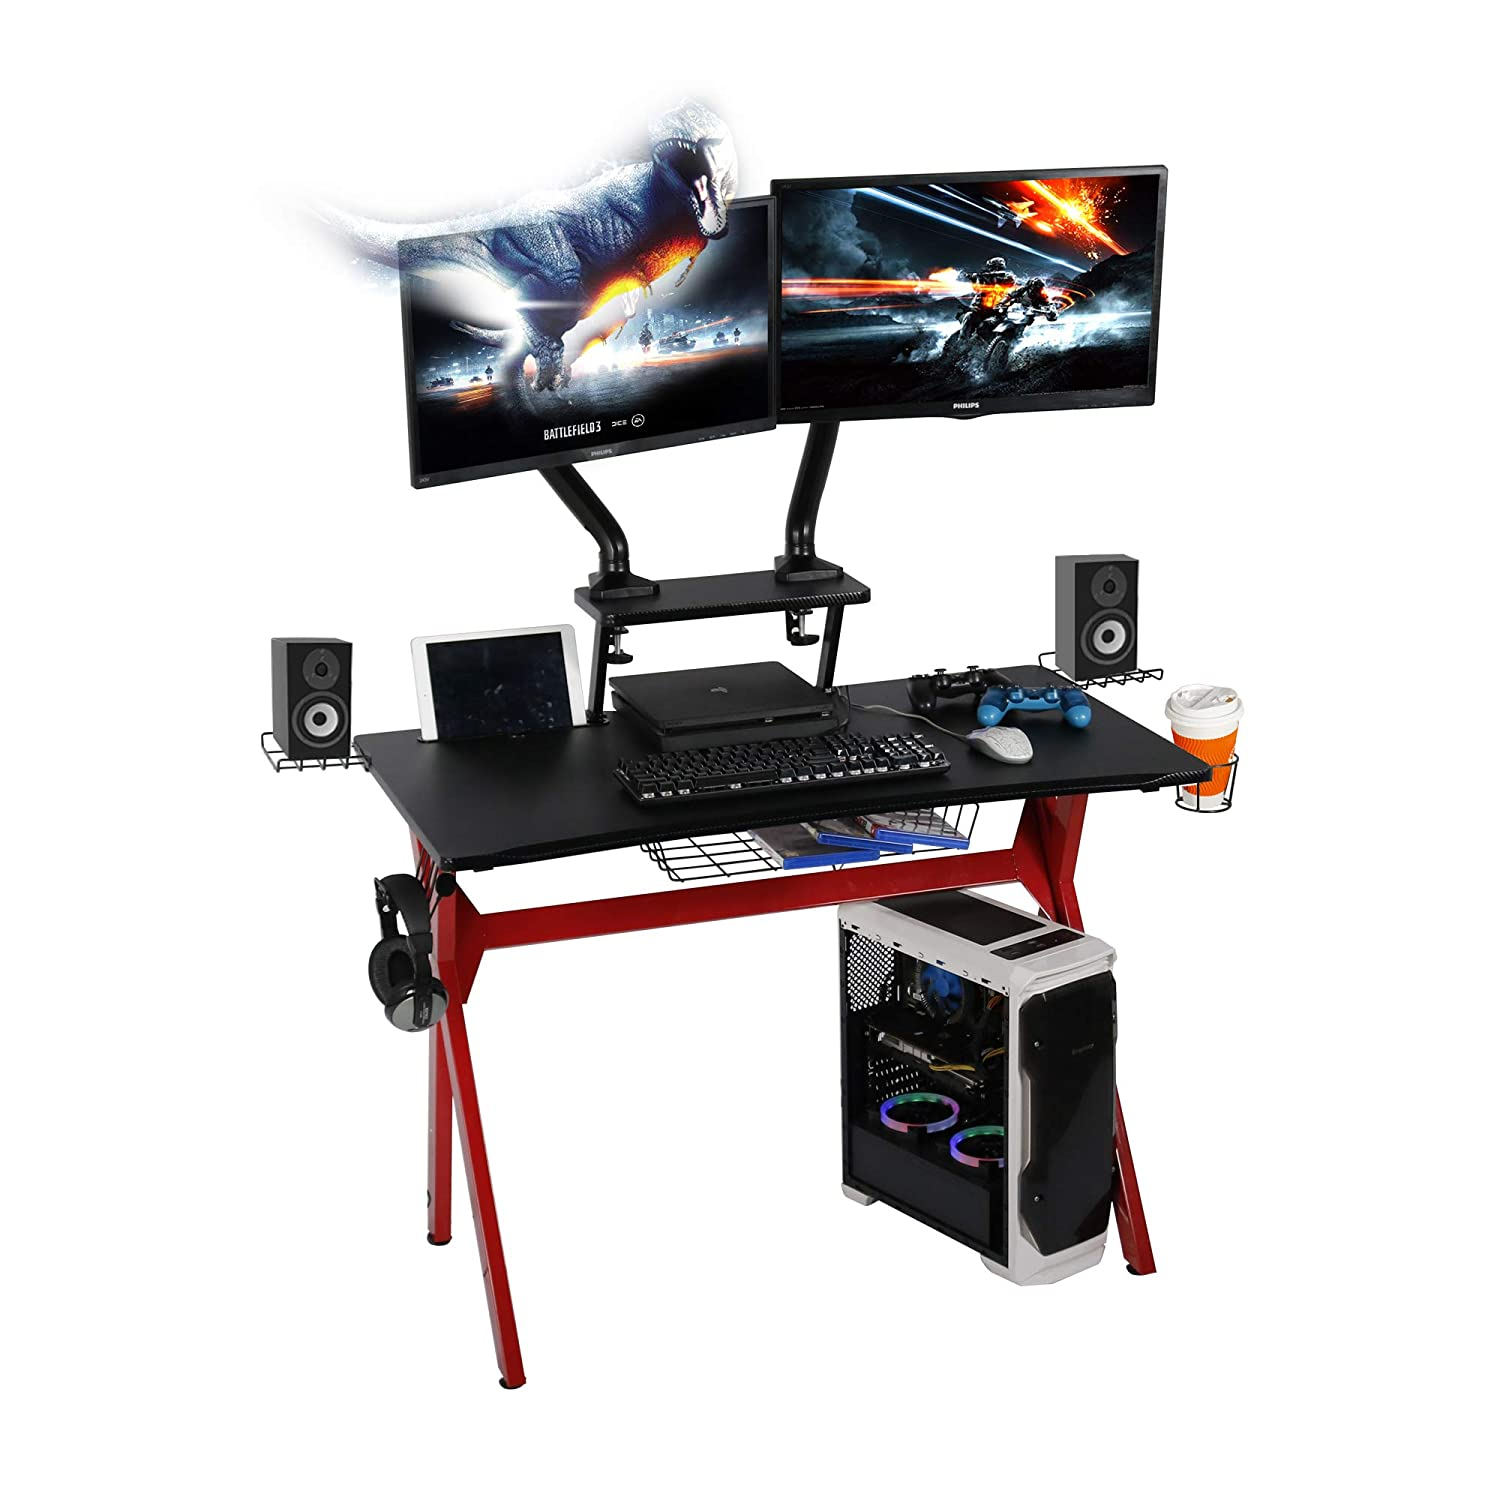 lazzo 41 Computer Gaming Desk,PC Game Table,41 x23.6 WXD ,Includes Removable Monitor Stand,Cup Holder,Wire Storage Ring,Headphone Hook,Speaker Stand,Gamer Workstation for Home Office, Red